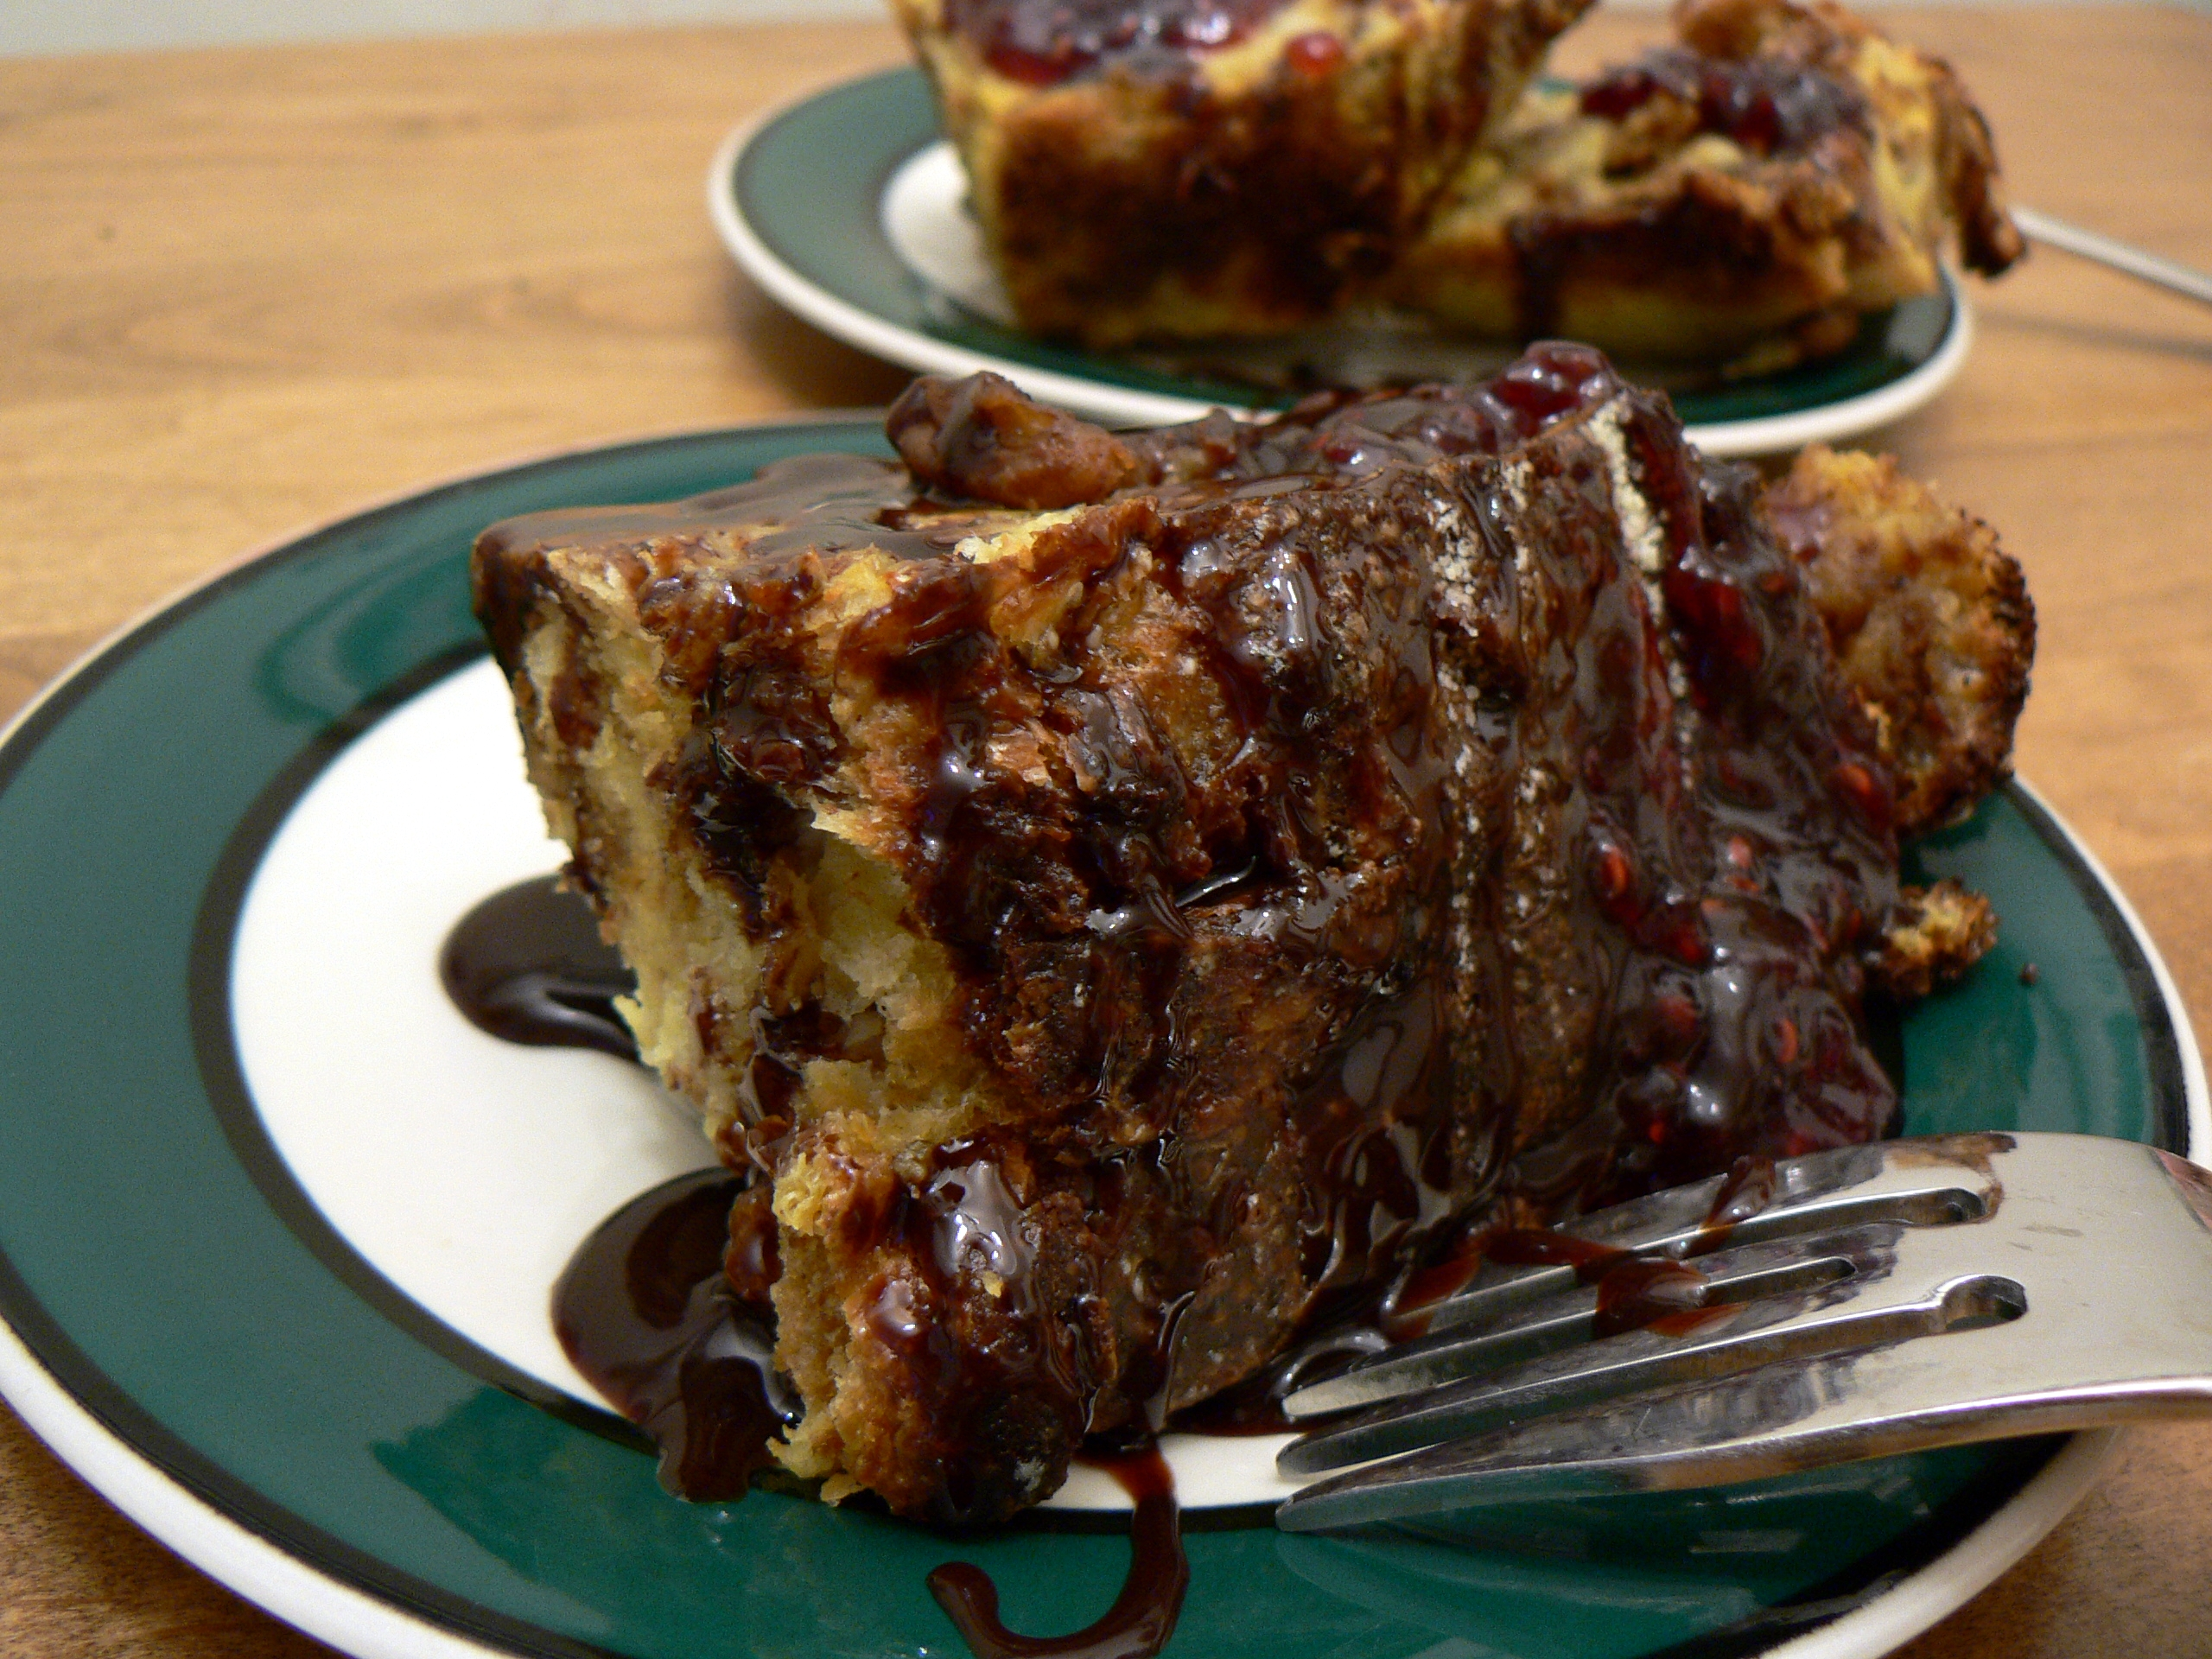 Croissant bread pudding with chocolate sauce